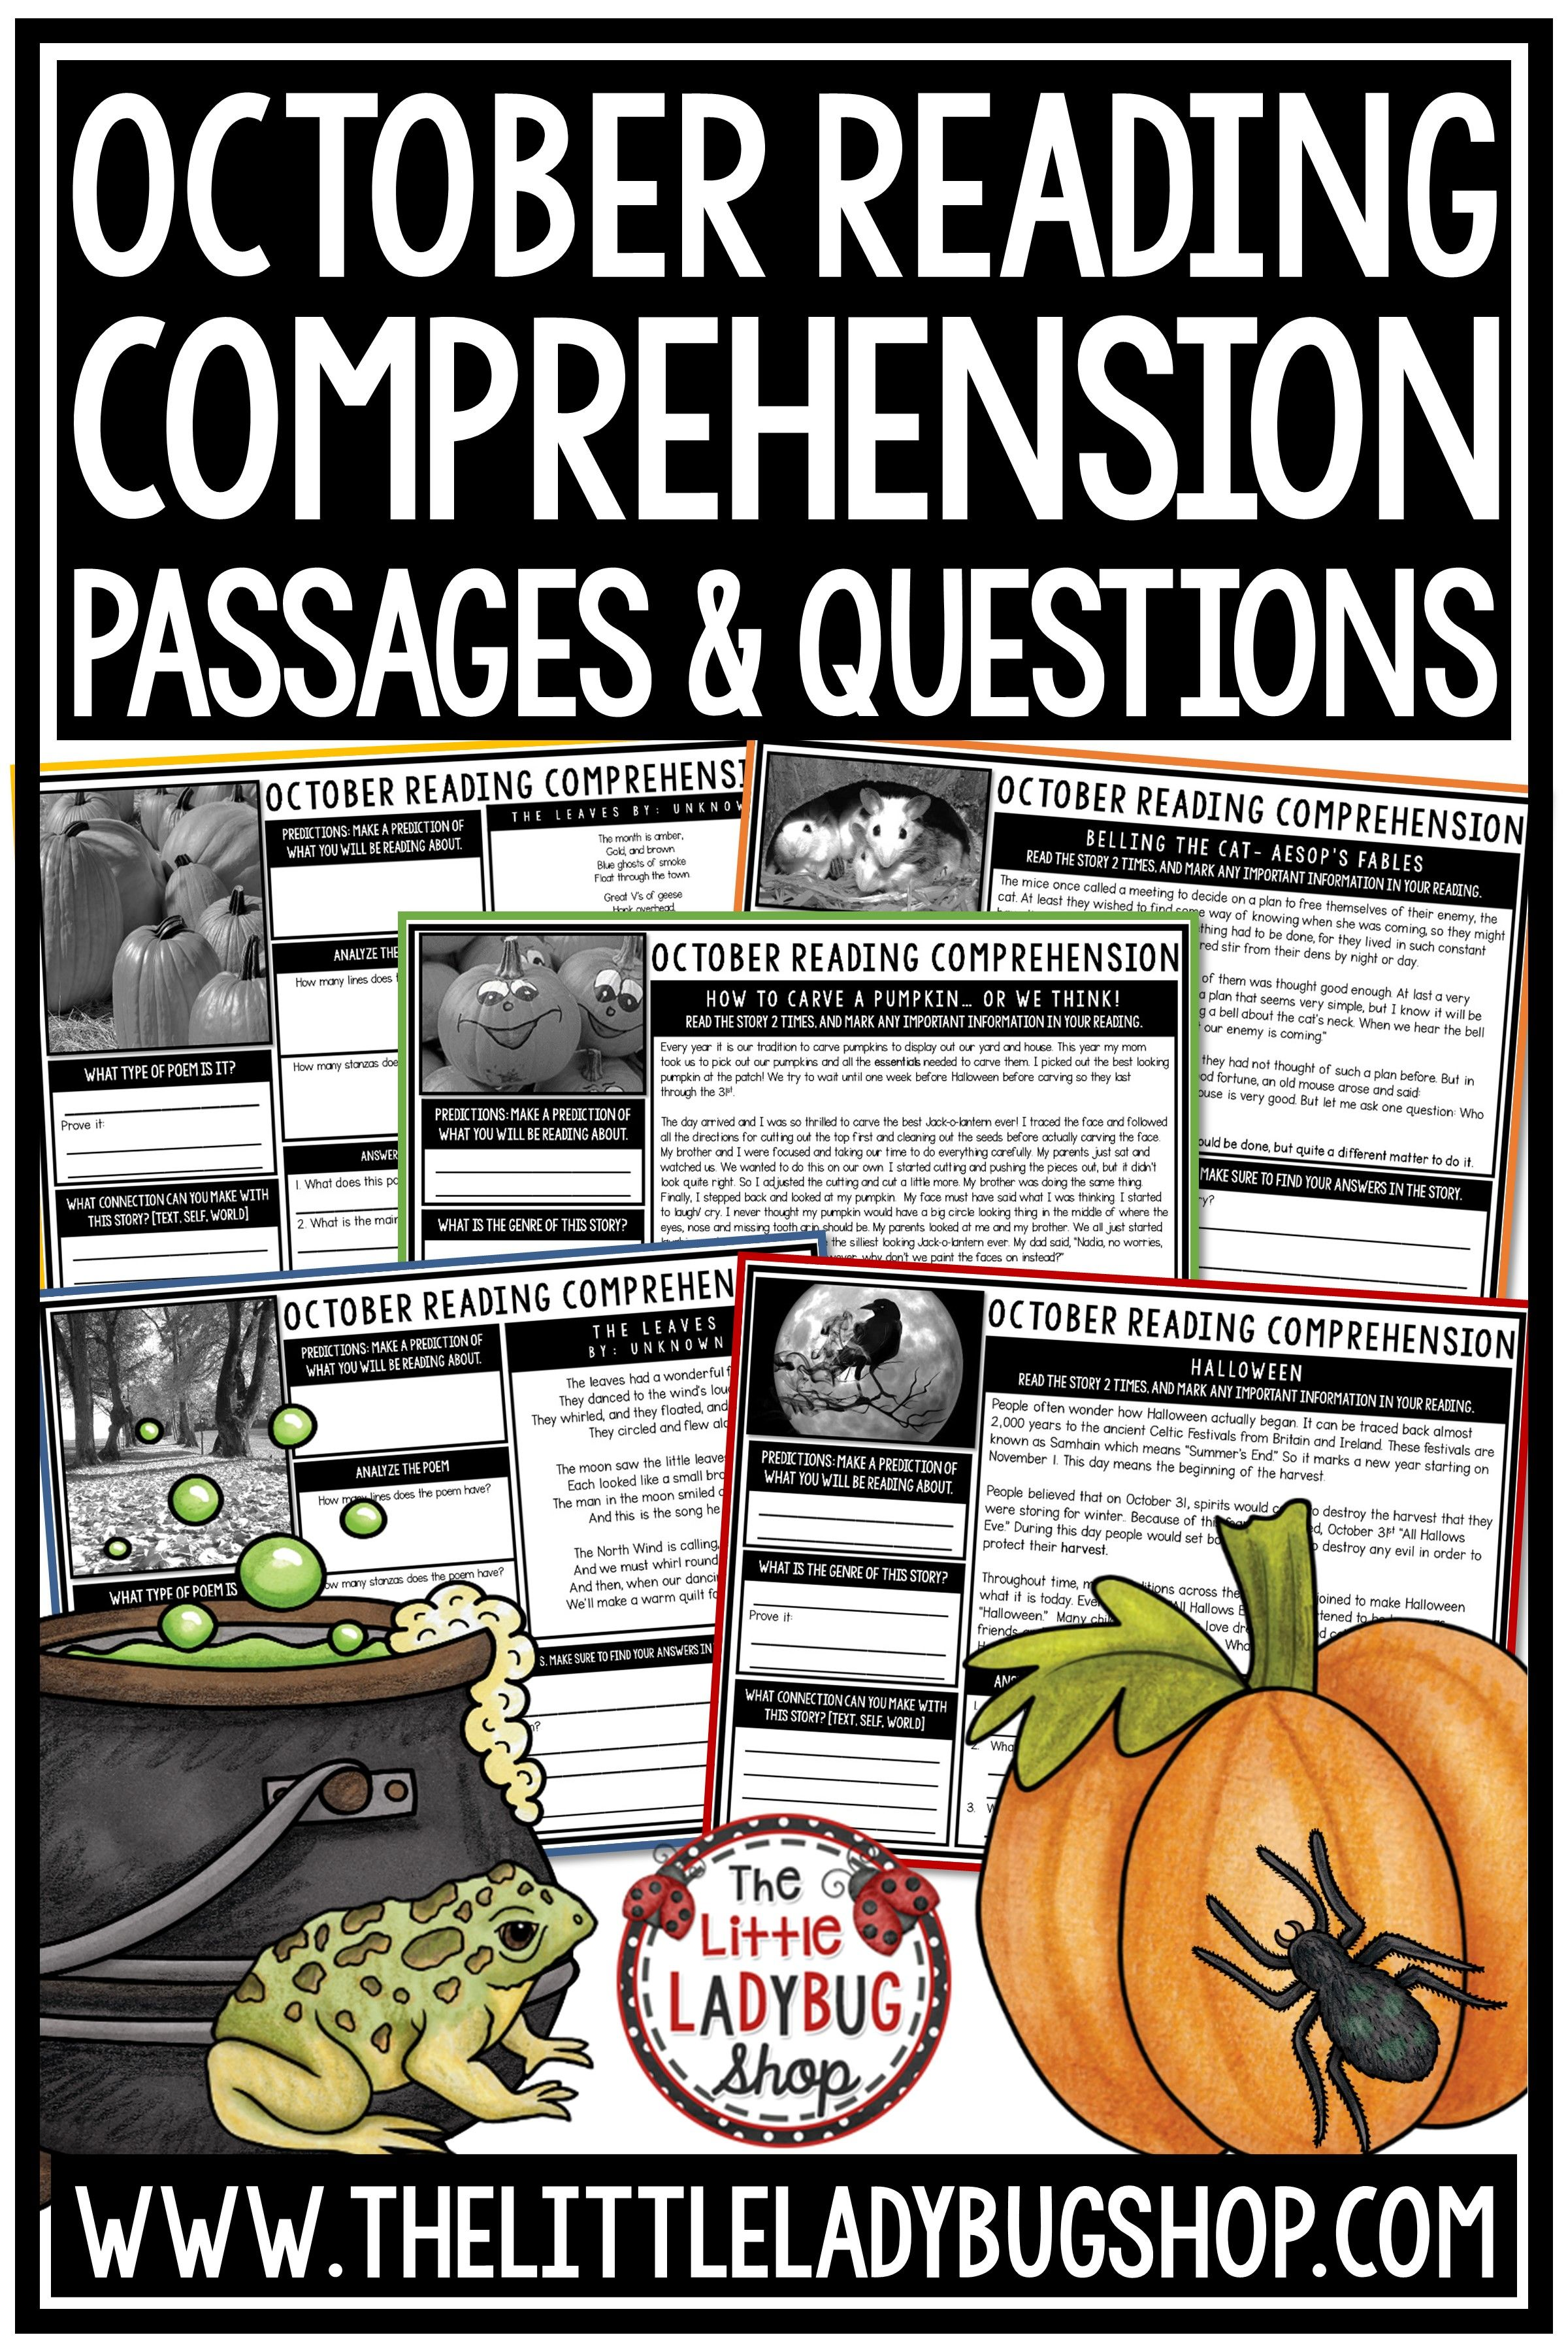 You Will Love Growing Your Readers With The October Reading Comprehension Passages W Reading Comprehension Passages Reading Comprehension Comprehension Passage [ 3600 x 2400 Pixel ]